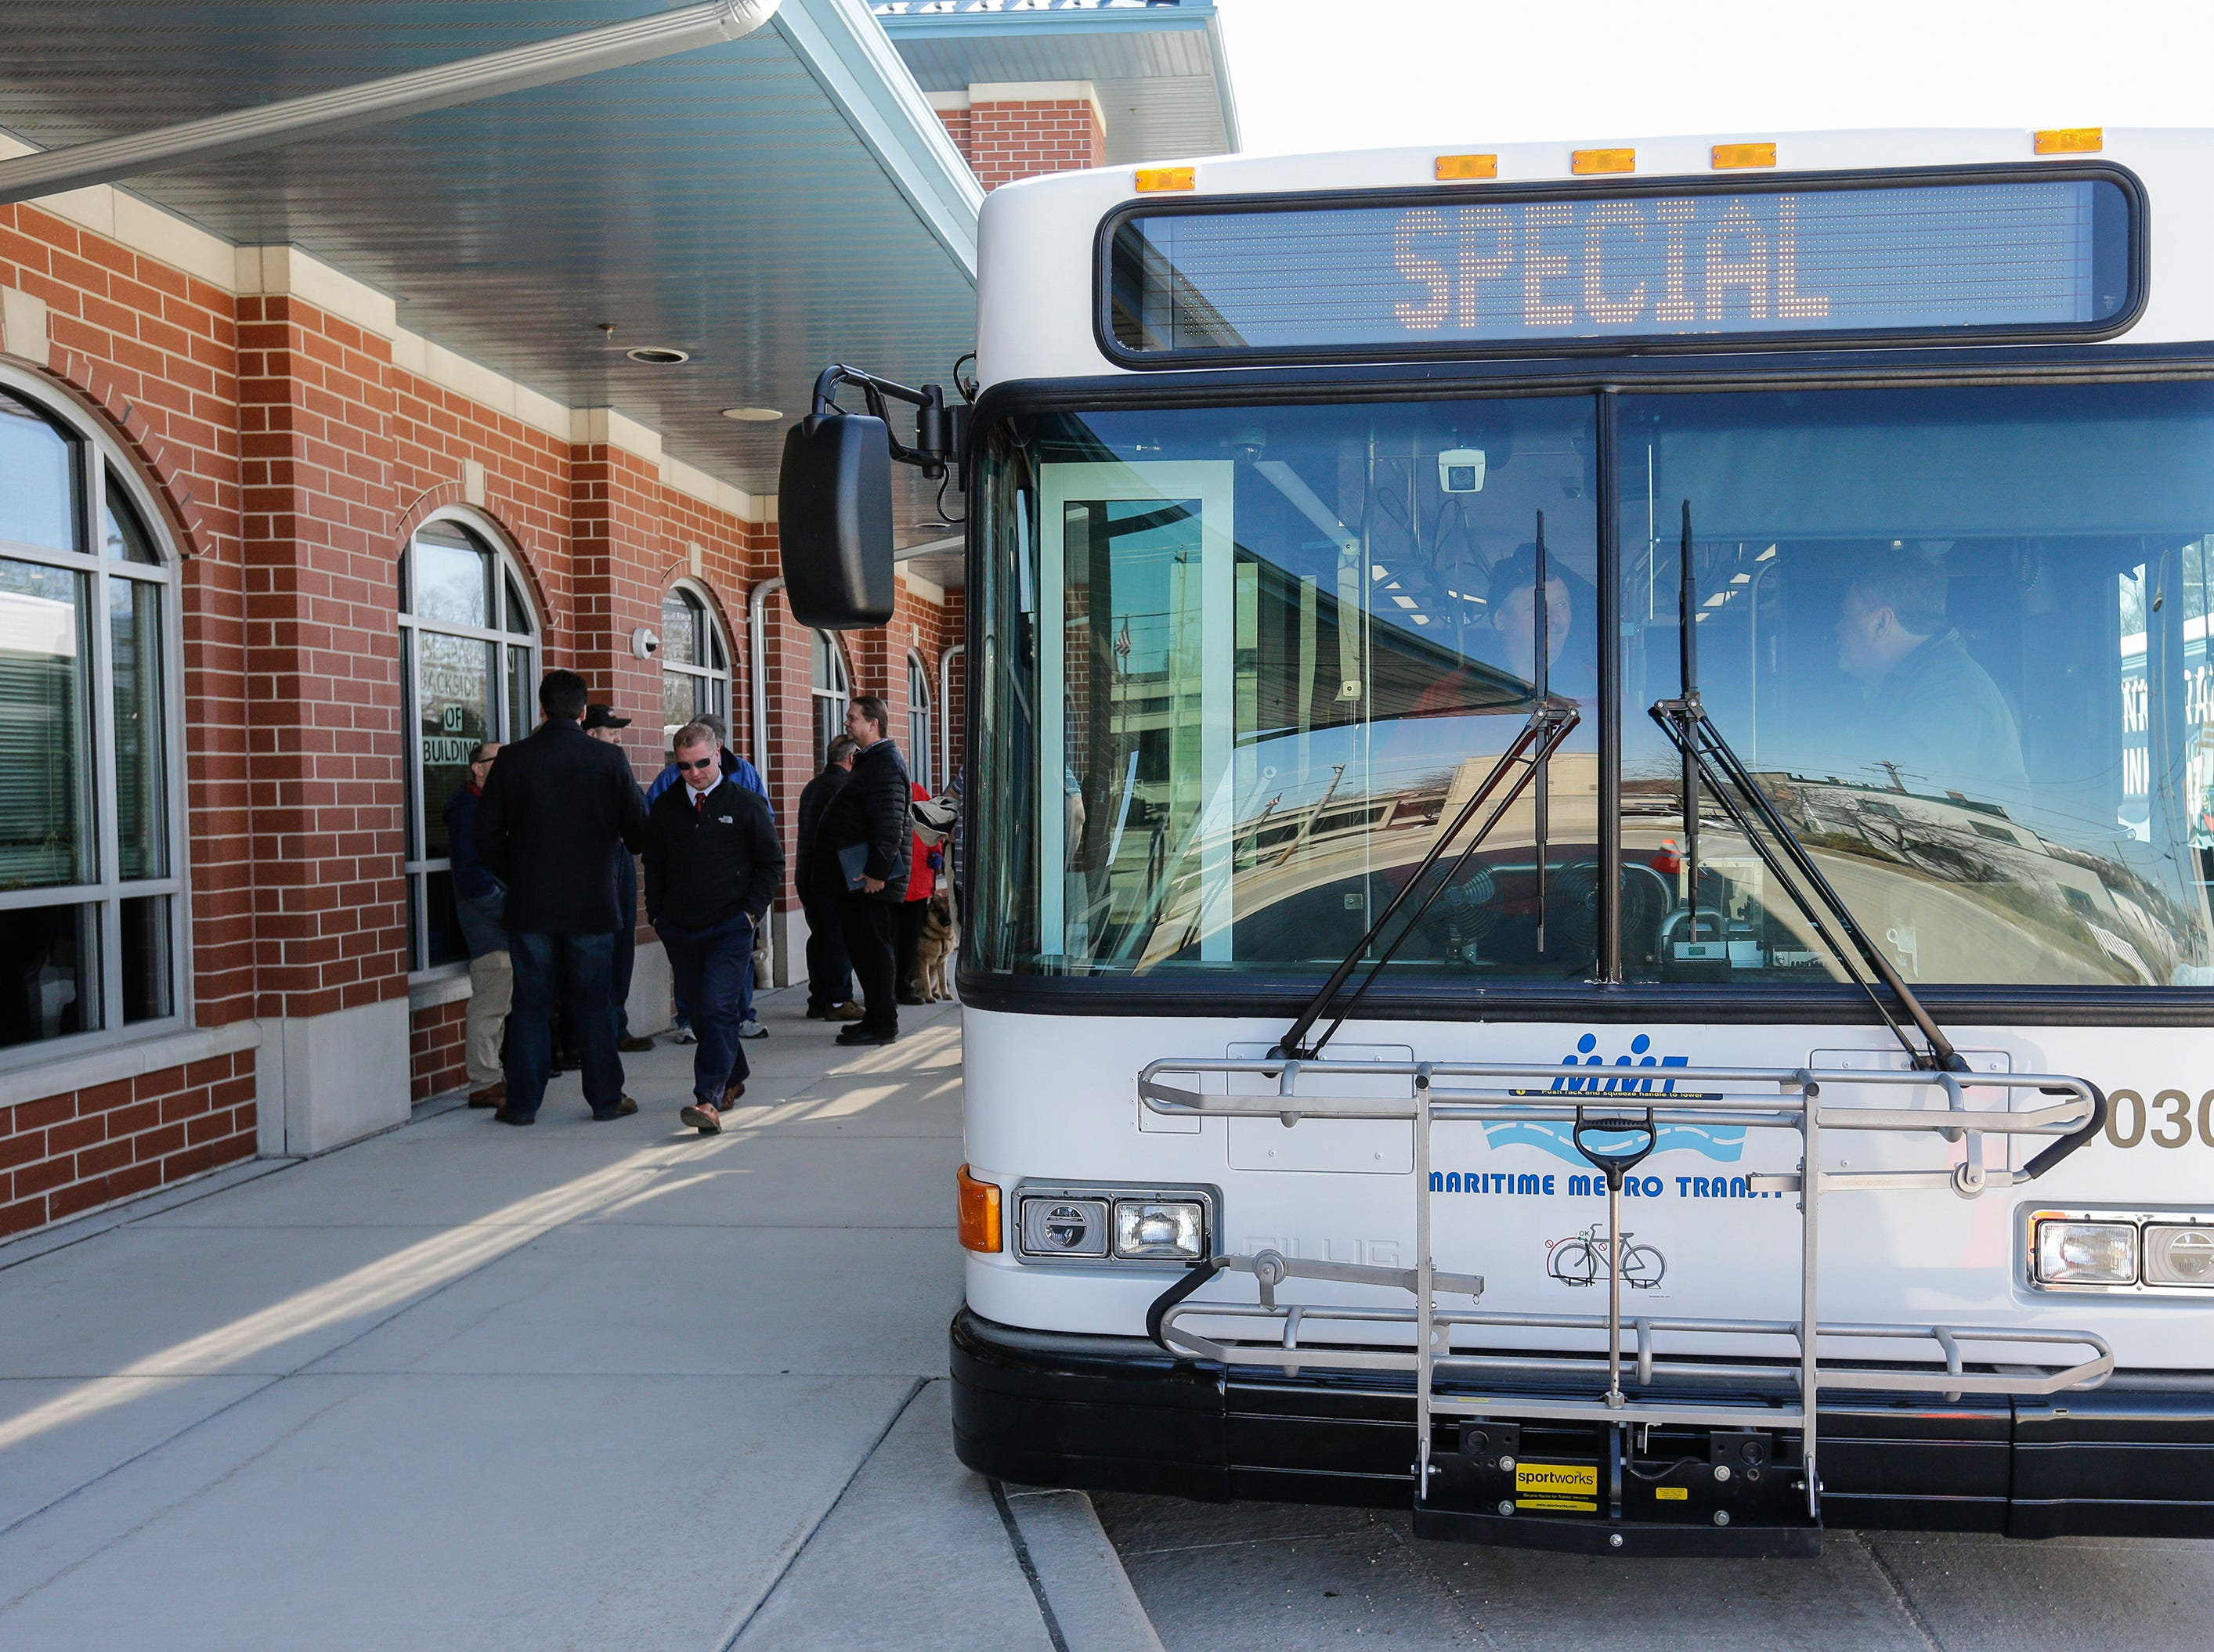 A new city bus is commissioned for Maritime Metro Transit outside the MMT transfer station Monday, March 25, 2019, in Manitowoc, Wis. The new buses feature better fuel economy, lower emissions, an updated video surveillance system, an automatic securement system for people with disabilities and the capability to incorporate a real-time transit app for mobile devices which the city hopes to implement in the future. The buses go into service today, replacing old buses with more than 600,000 miles purchased between 2004 and 2005. Joshua Clark/USA TODAY NETWORK-Wisconsin